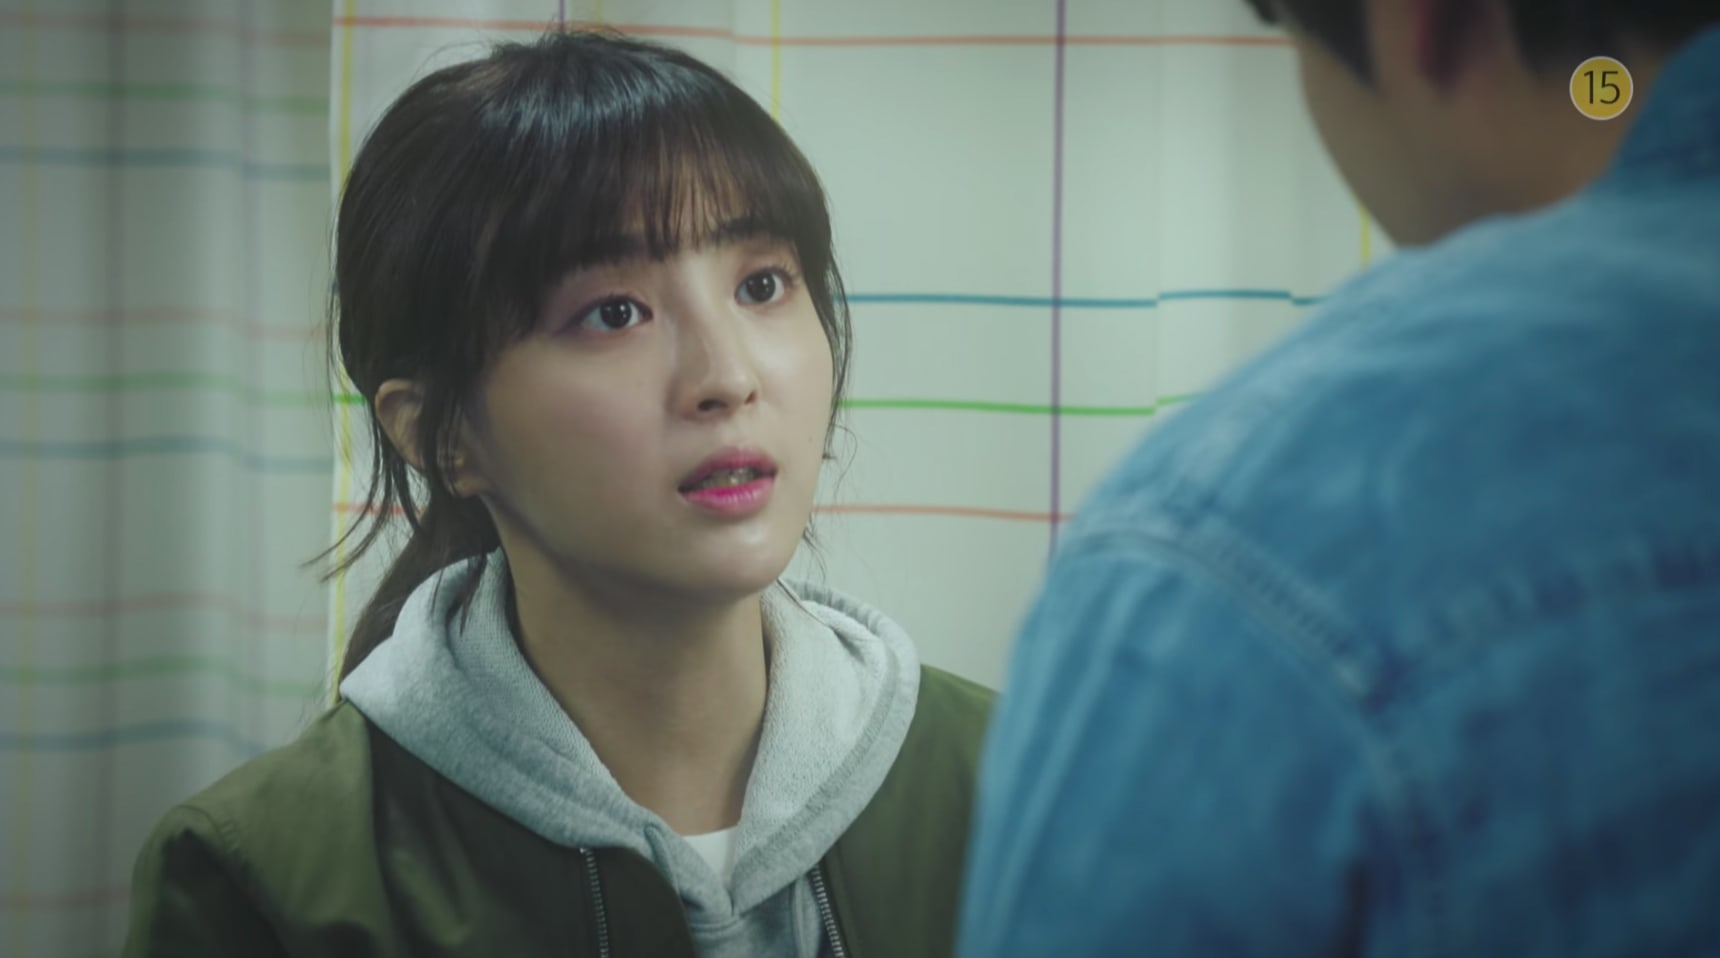 Jung Hye Sung Reveals Her Affection For Her Character In New